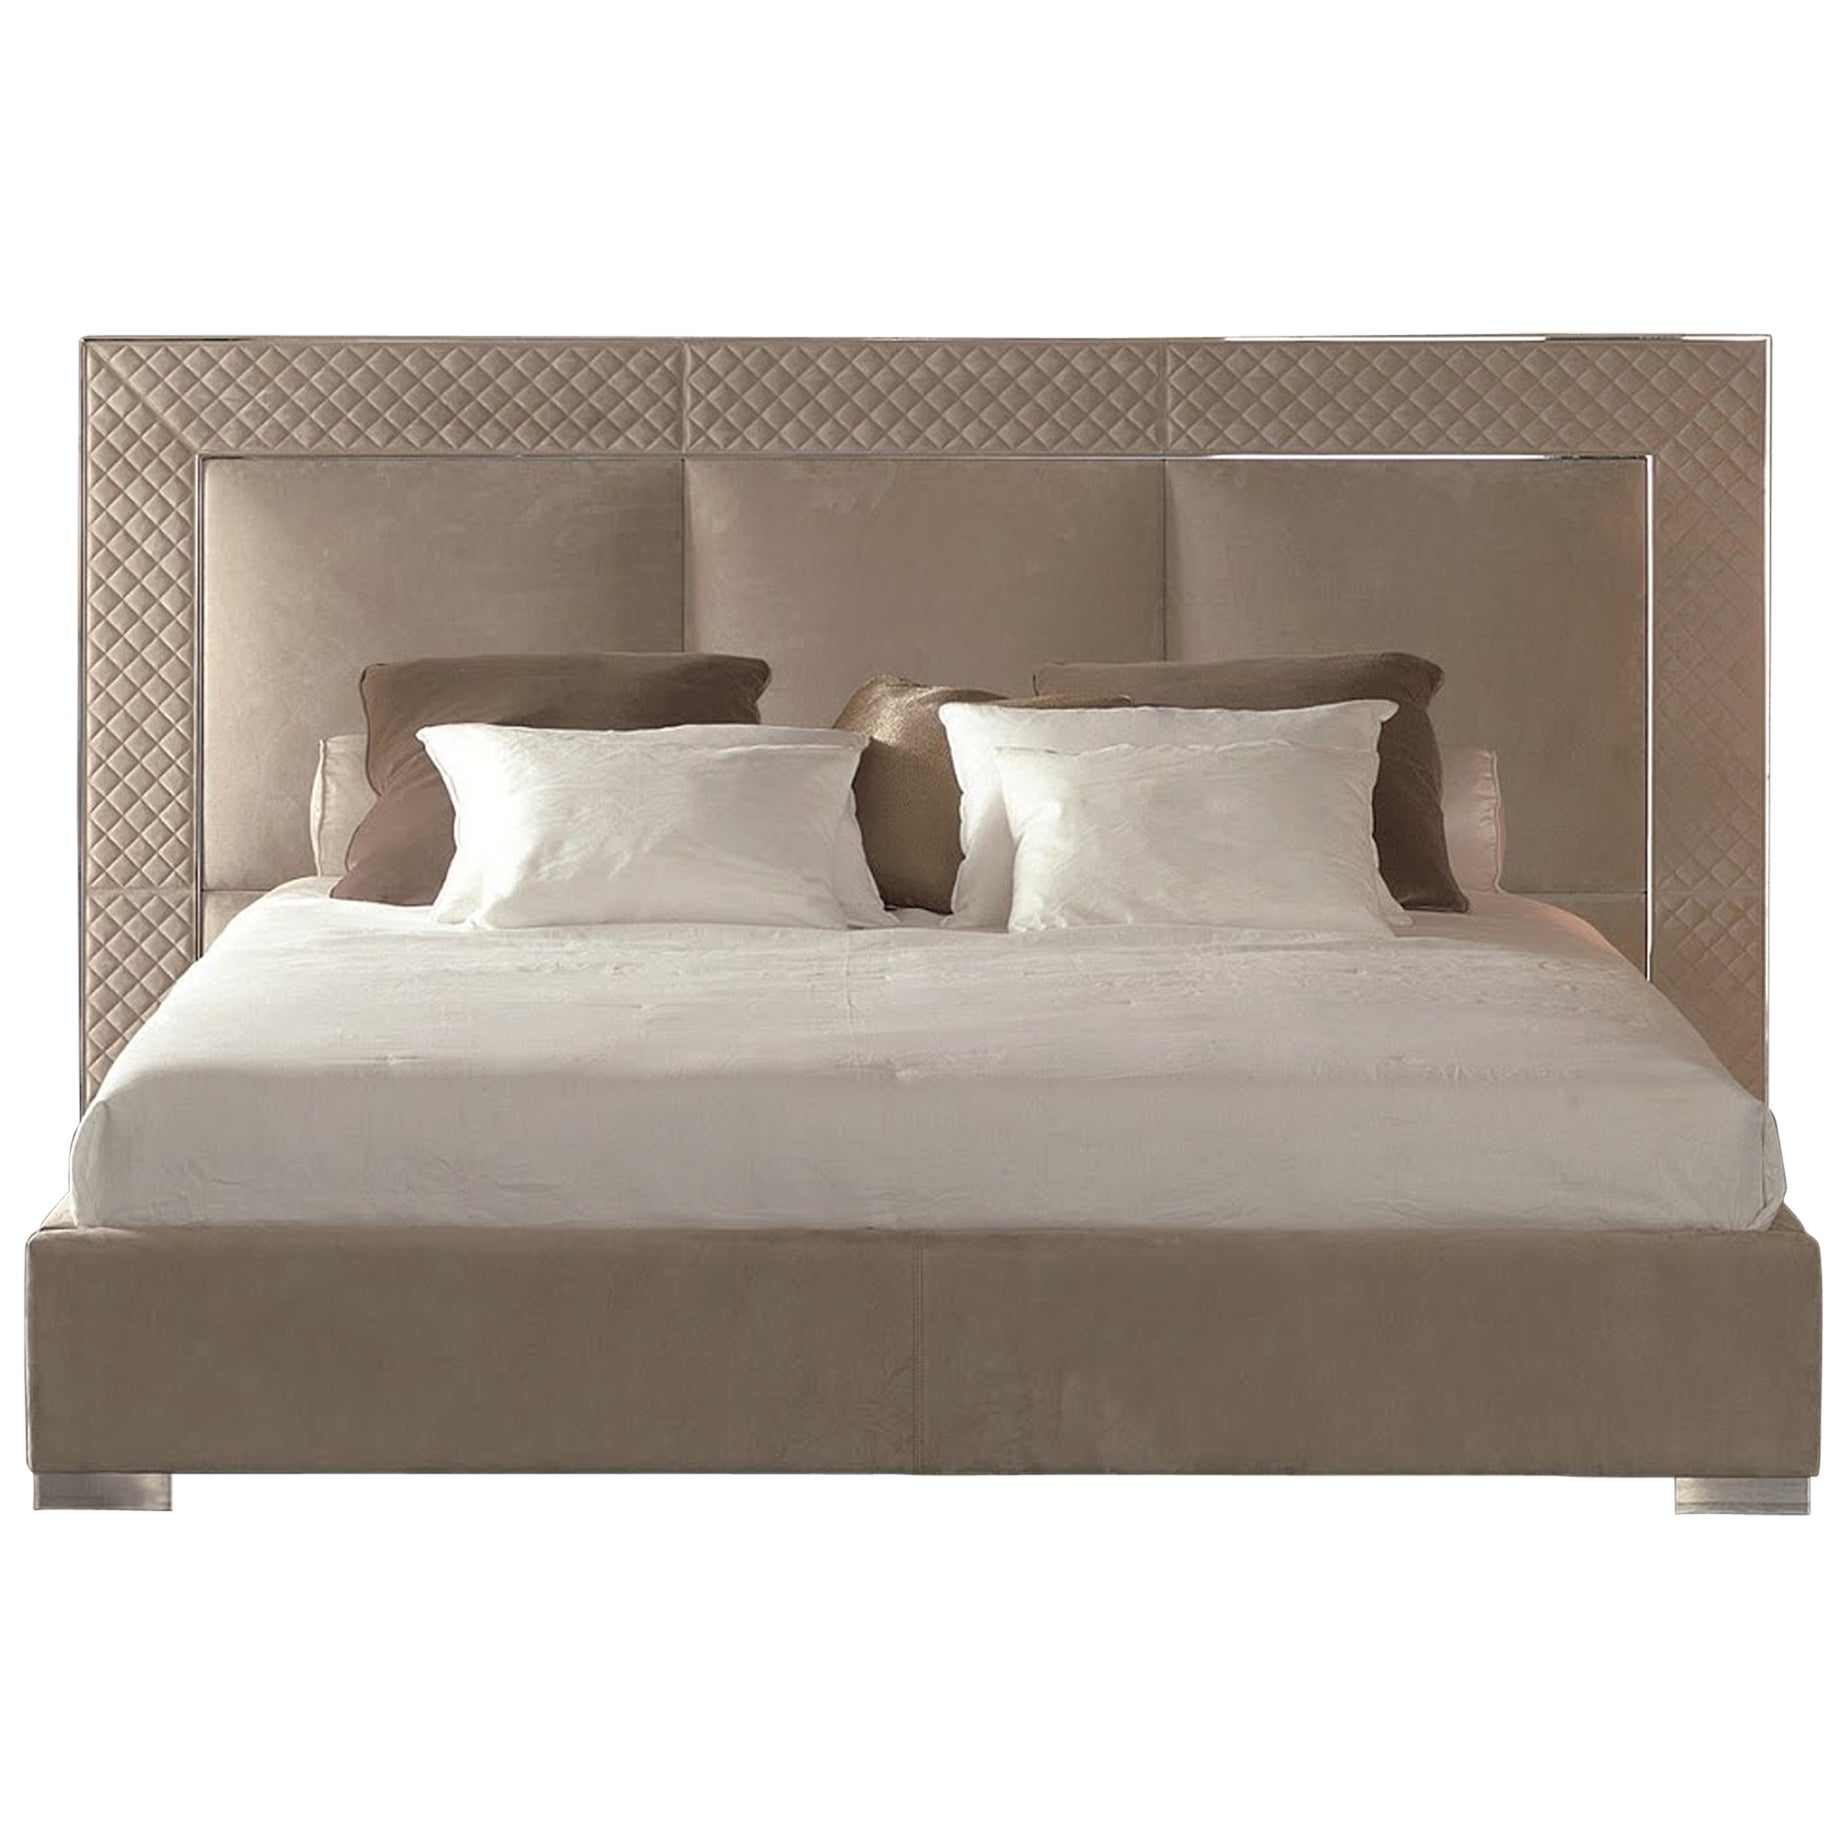 Sigma Bed with Low Headboard, Leather Upholstery Bronze or Steel Frame